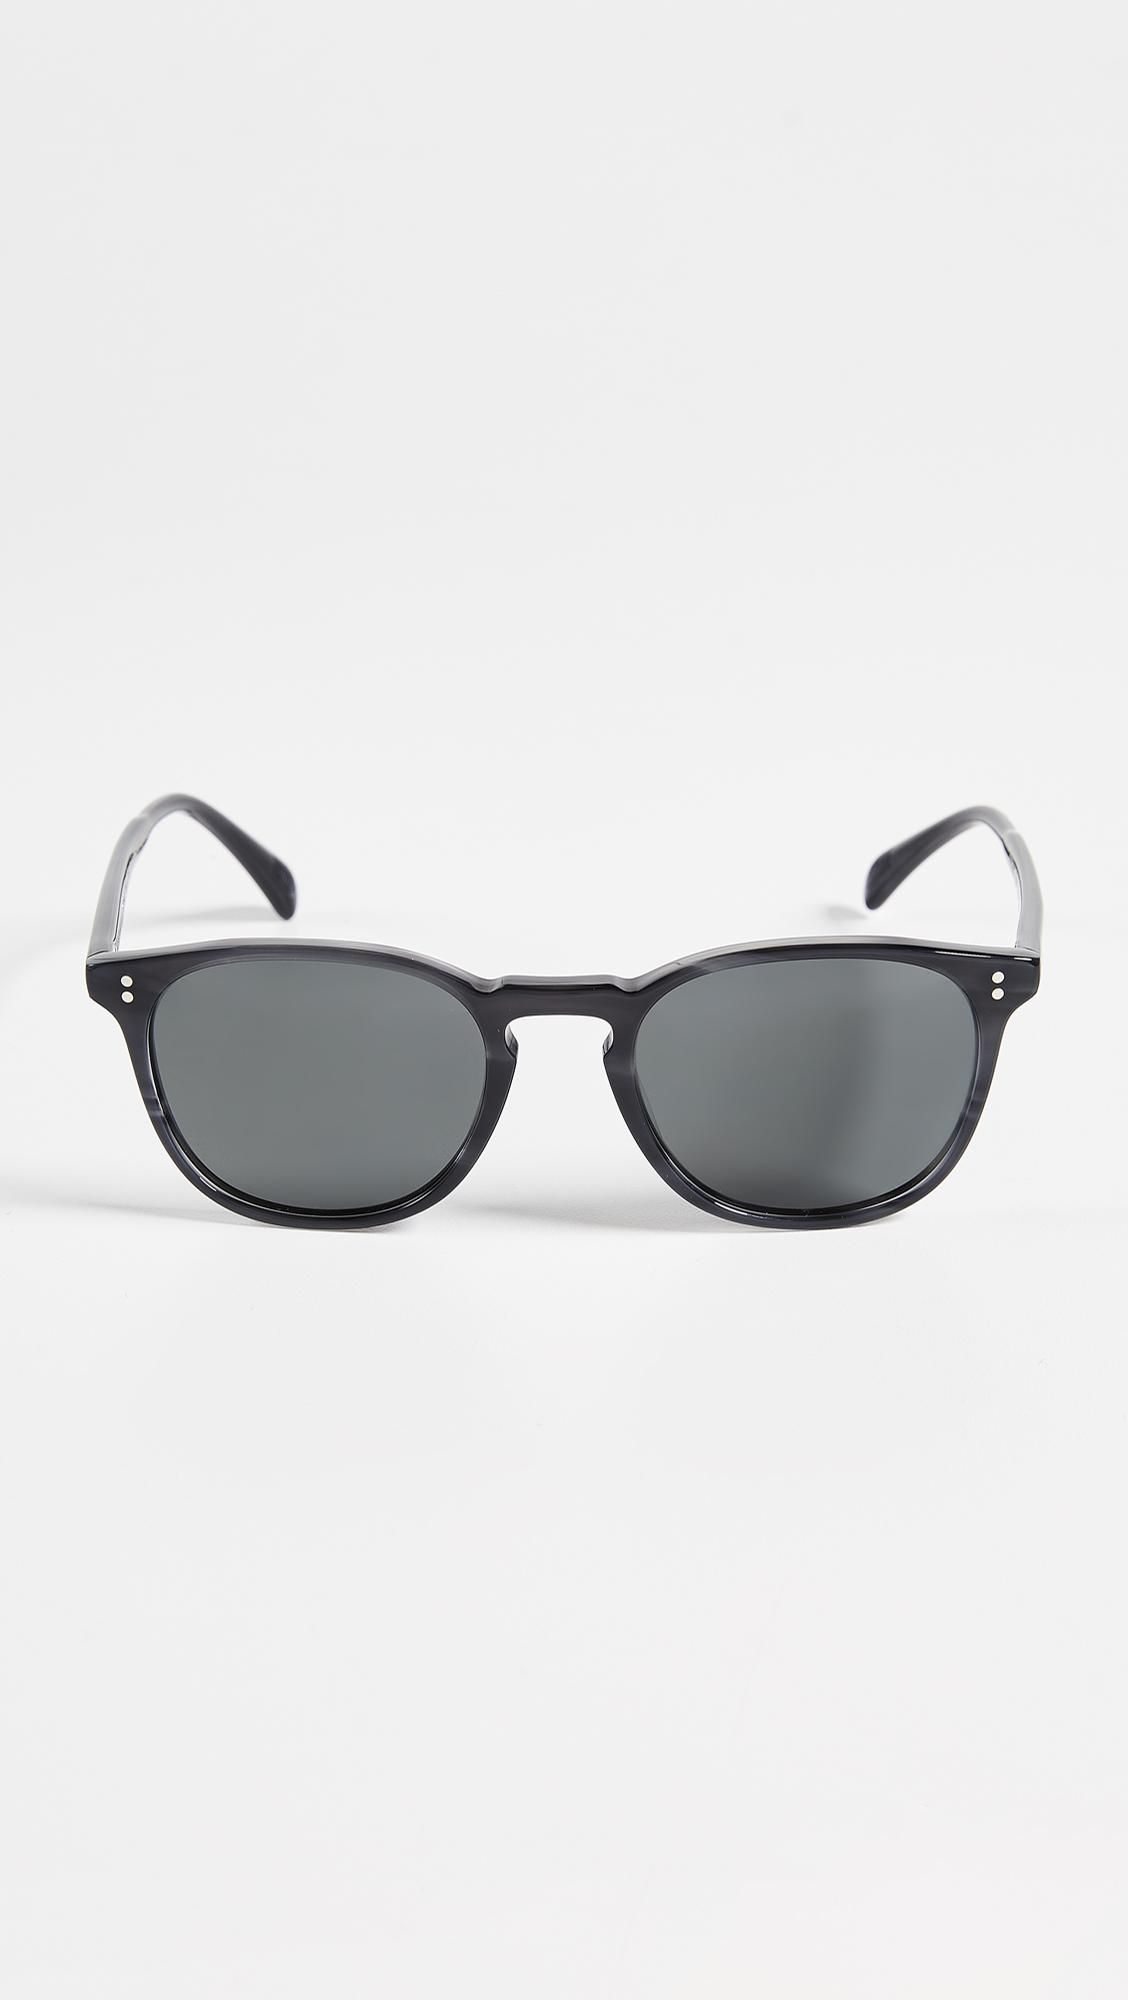 2463c03d36 Lyst - Oliver Peoples Finley Esquire Sunglasses in Gray for Men